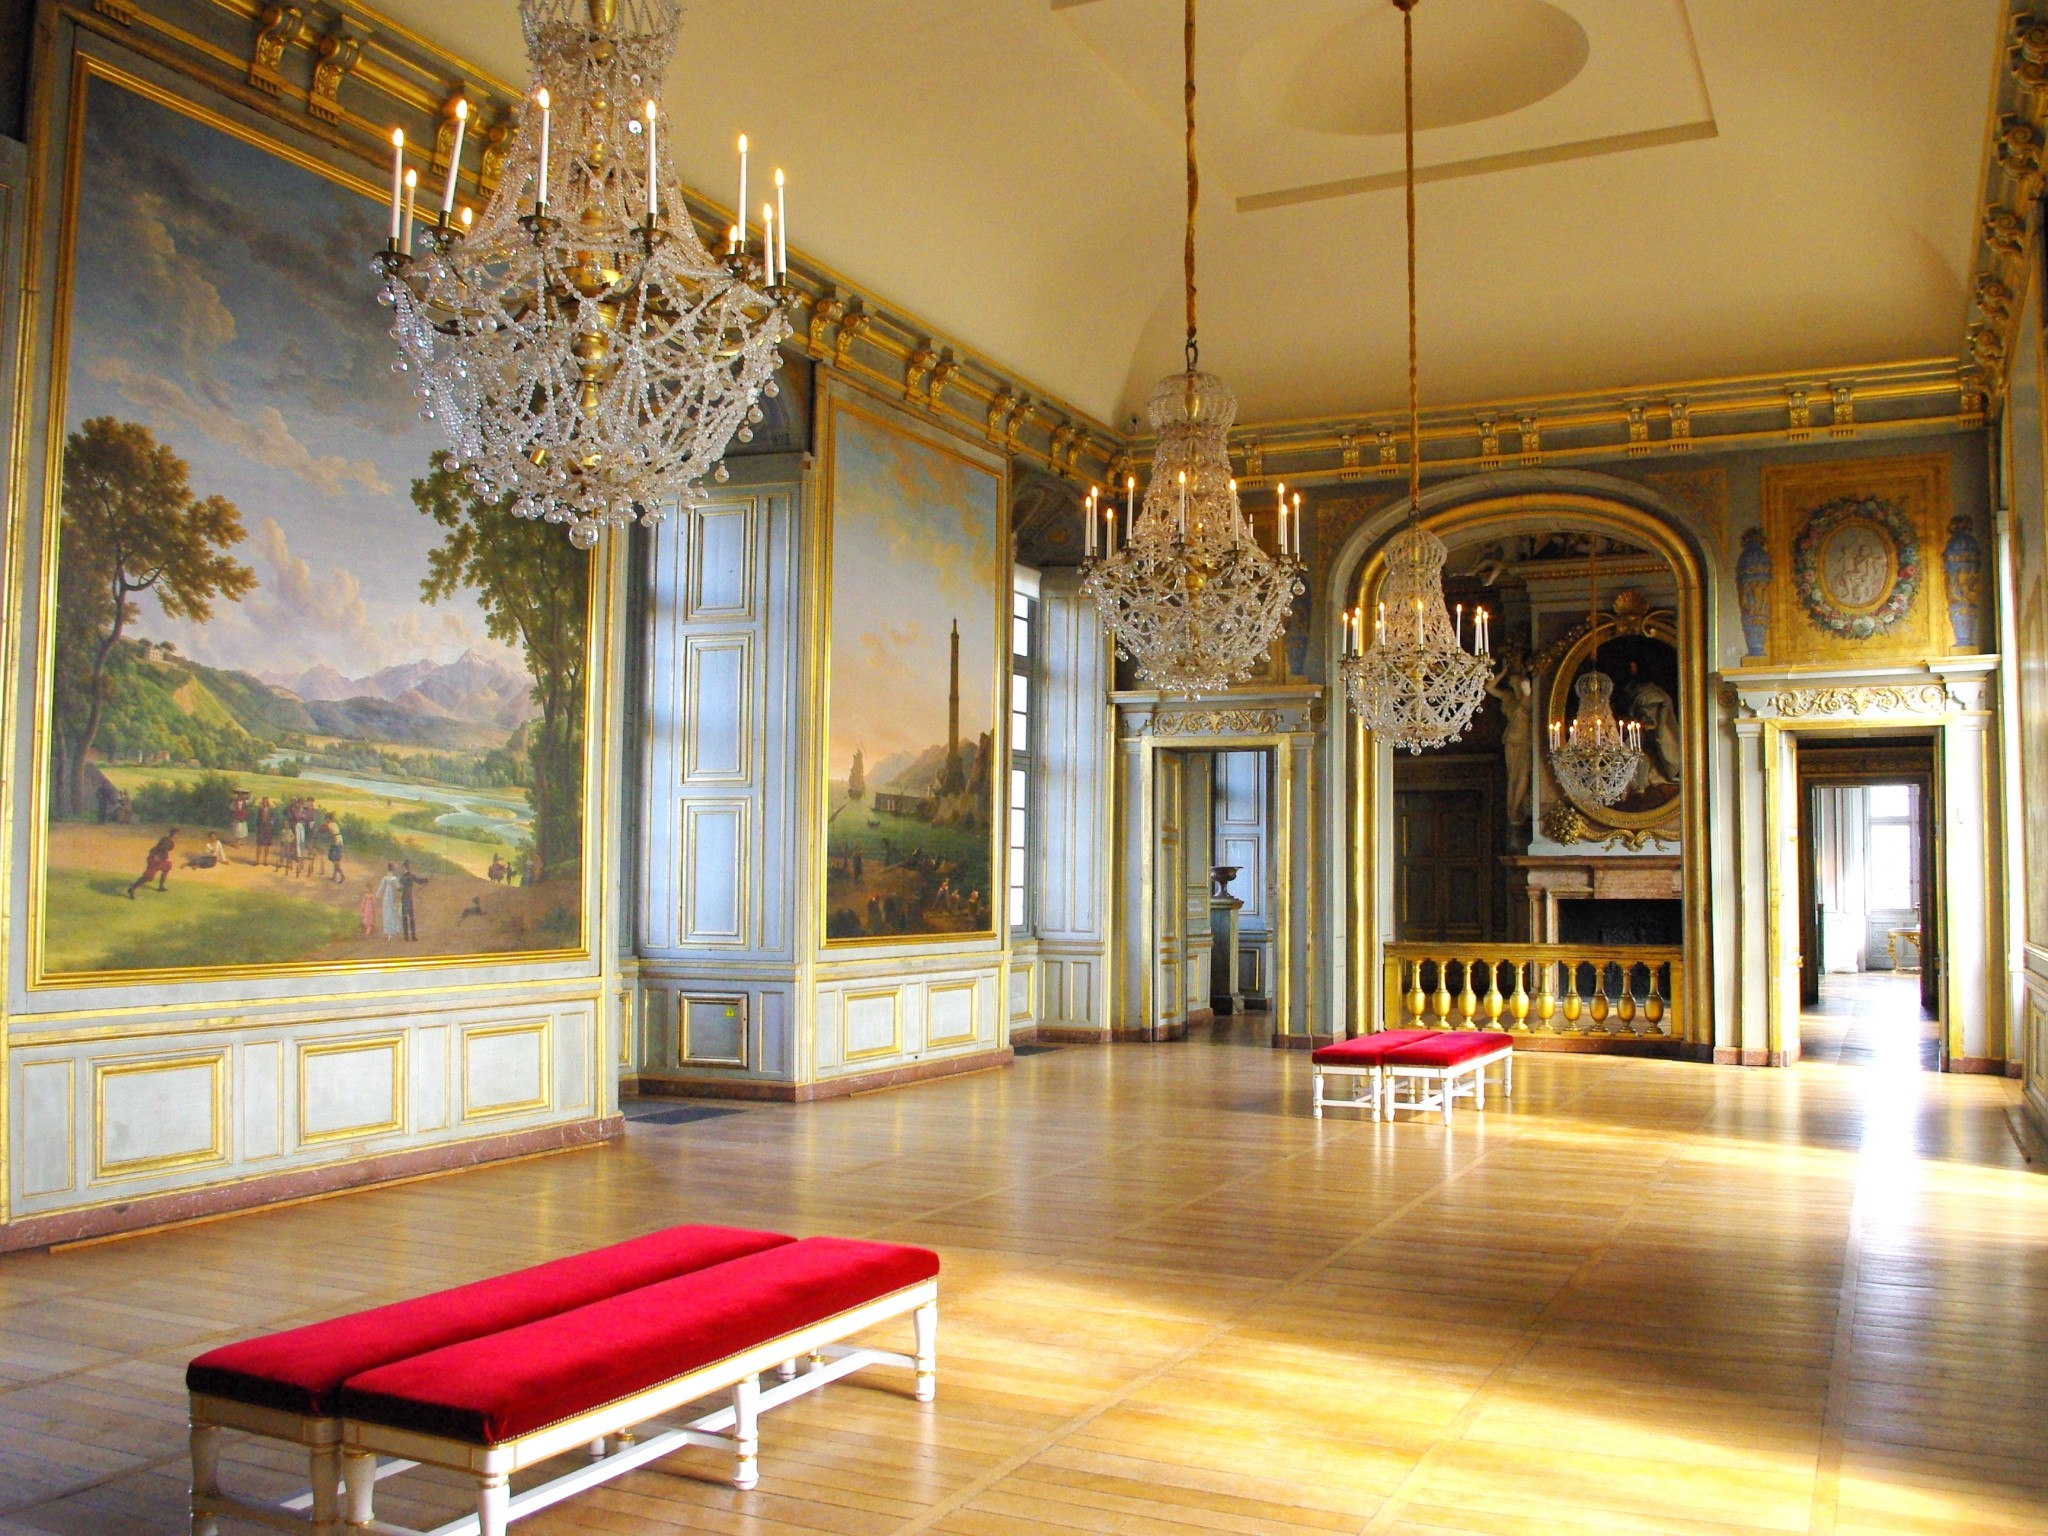 Inside the chateau of Maisons-Laffitte - the grand ballroom © French Moments